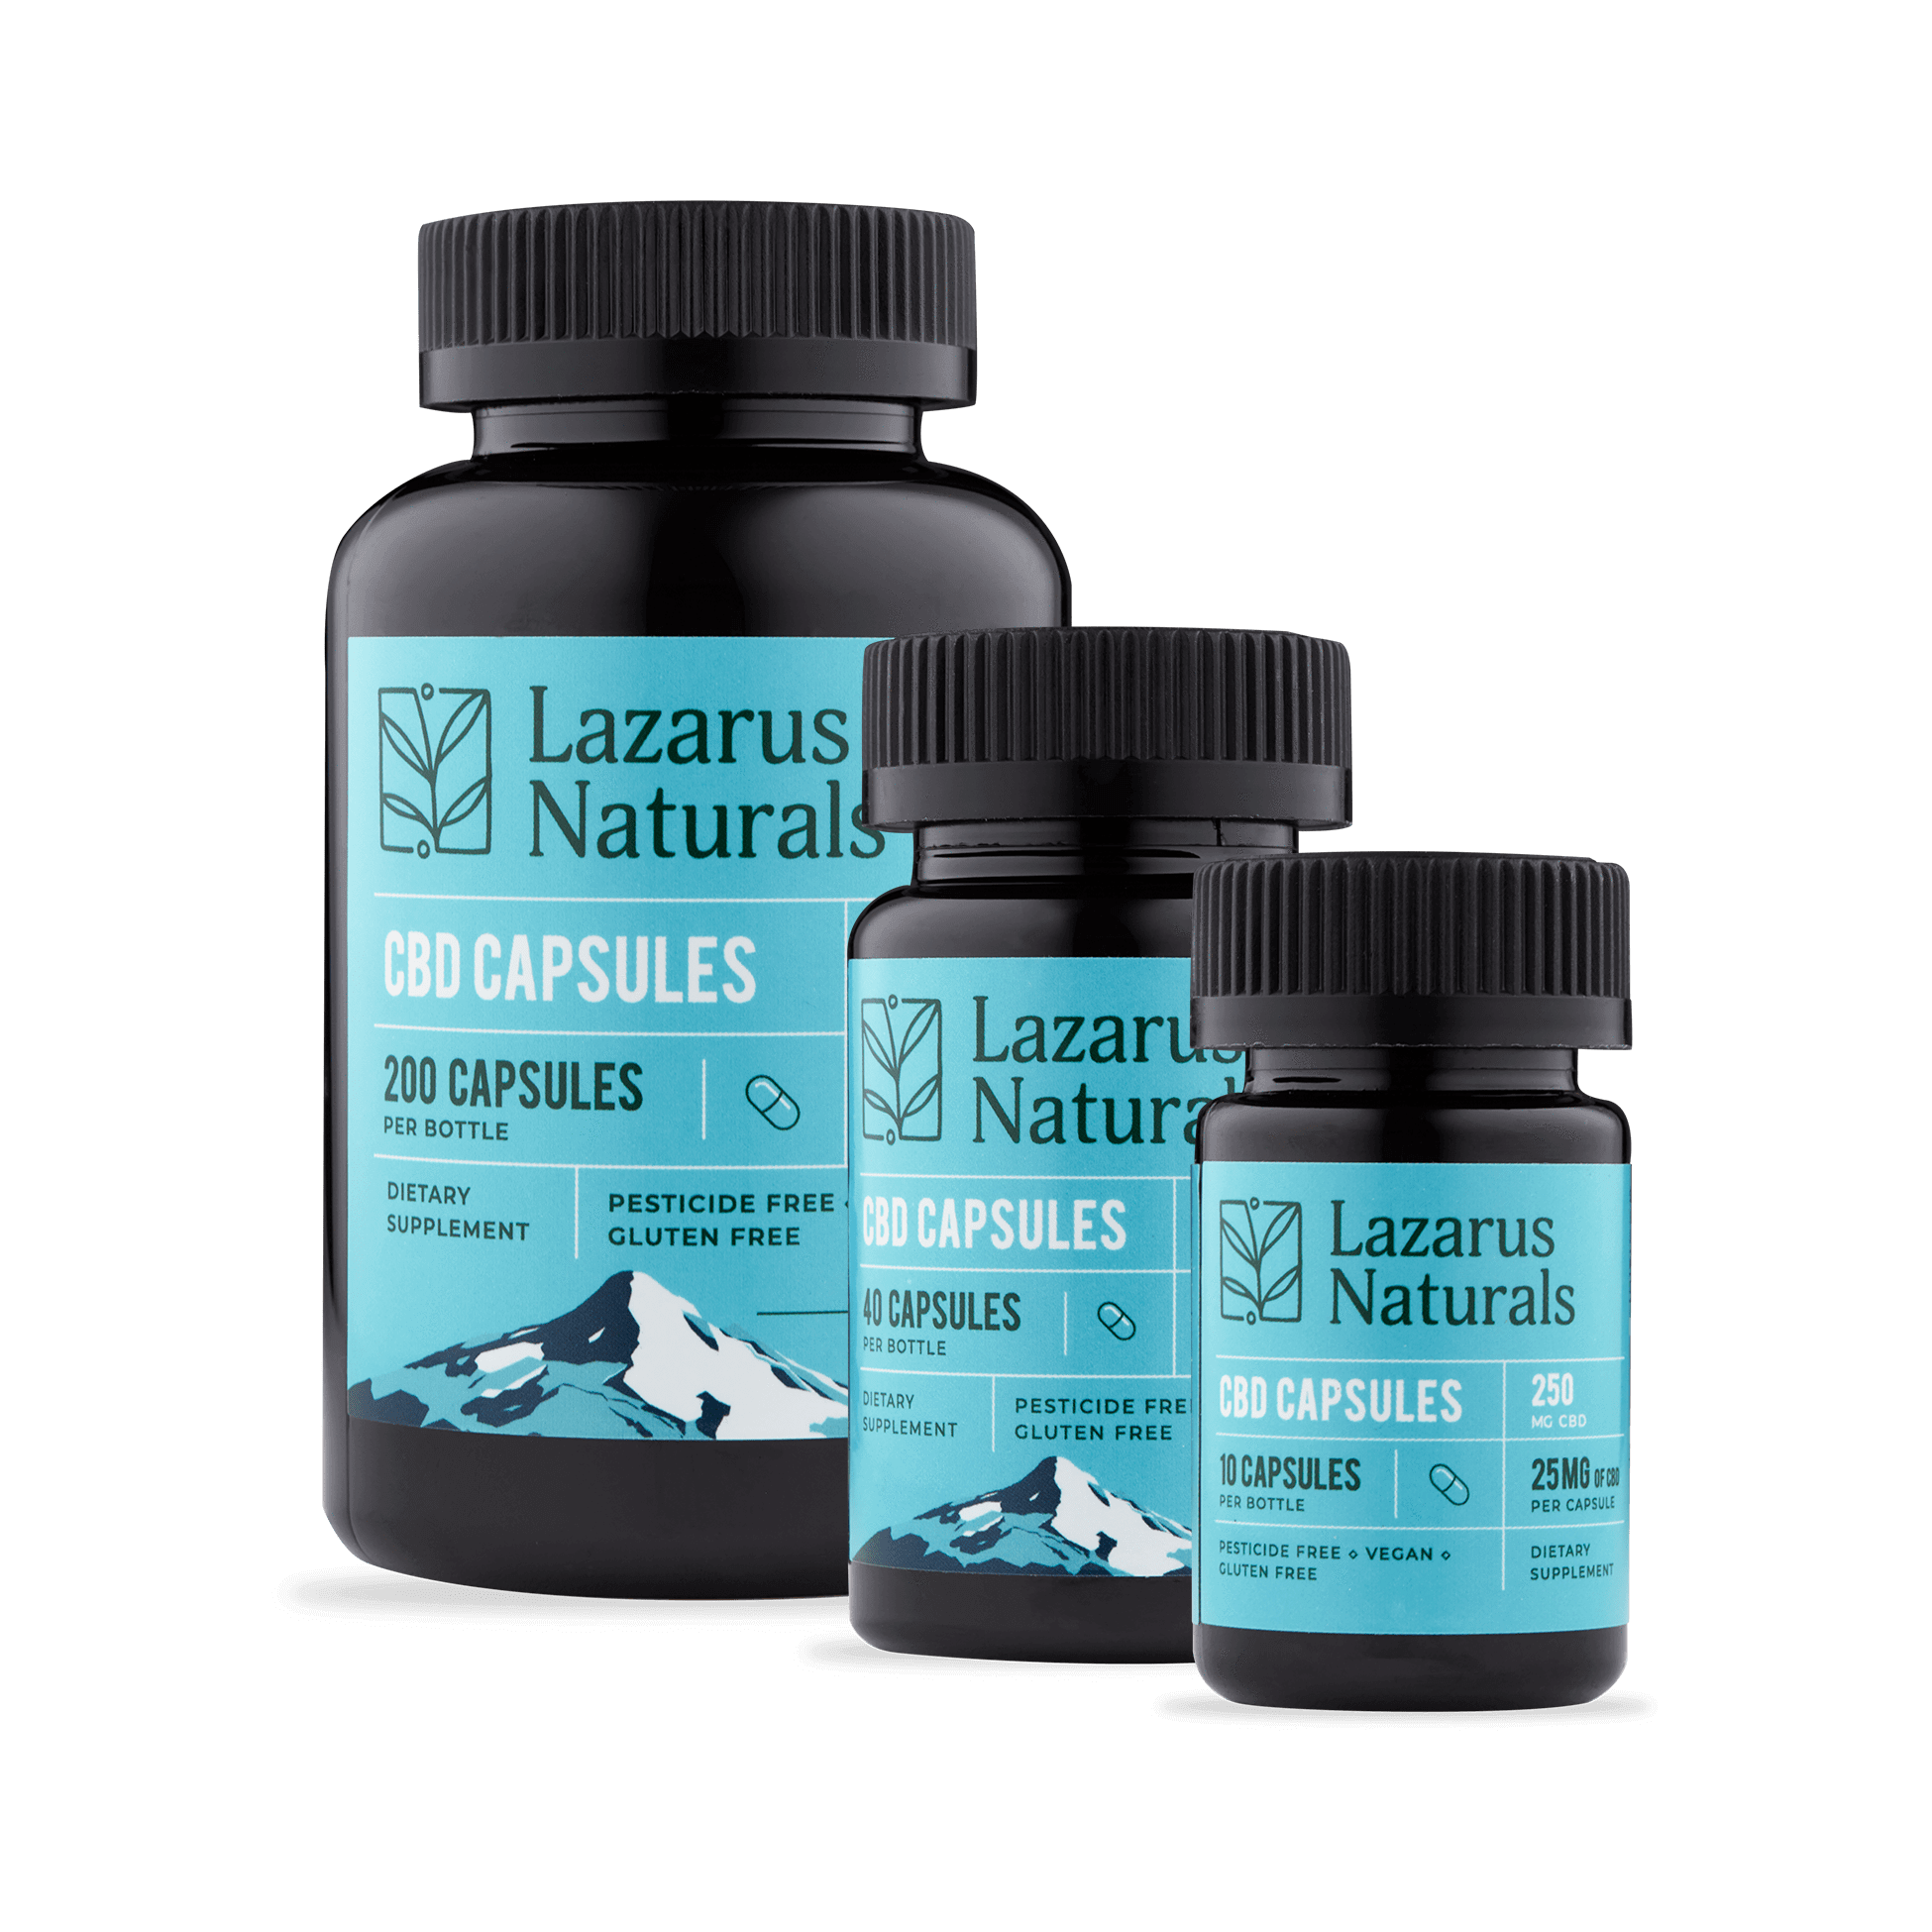 LazarusNaturals_Groupings_Capsules_25mg.png